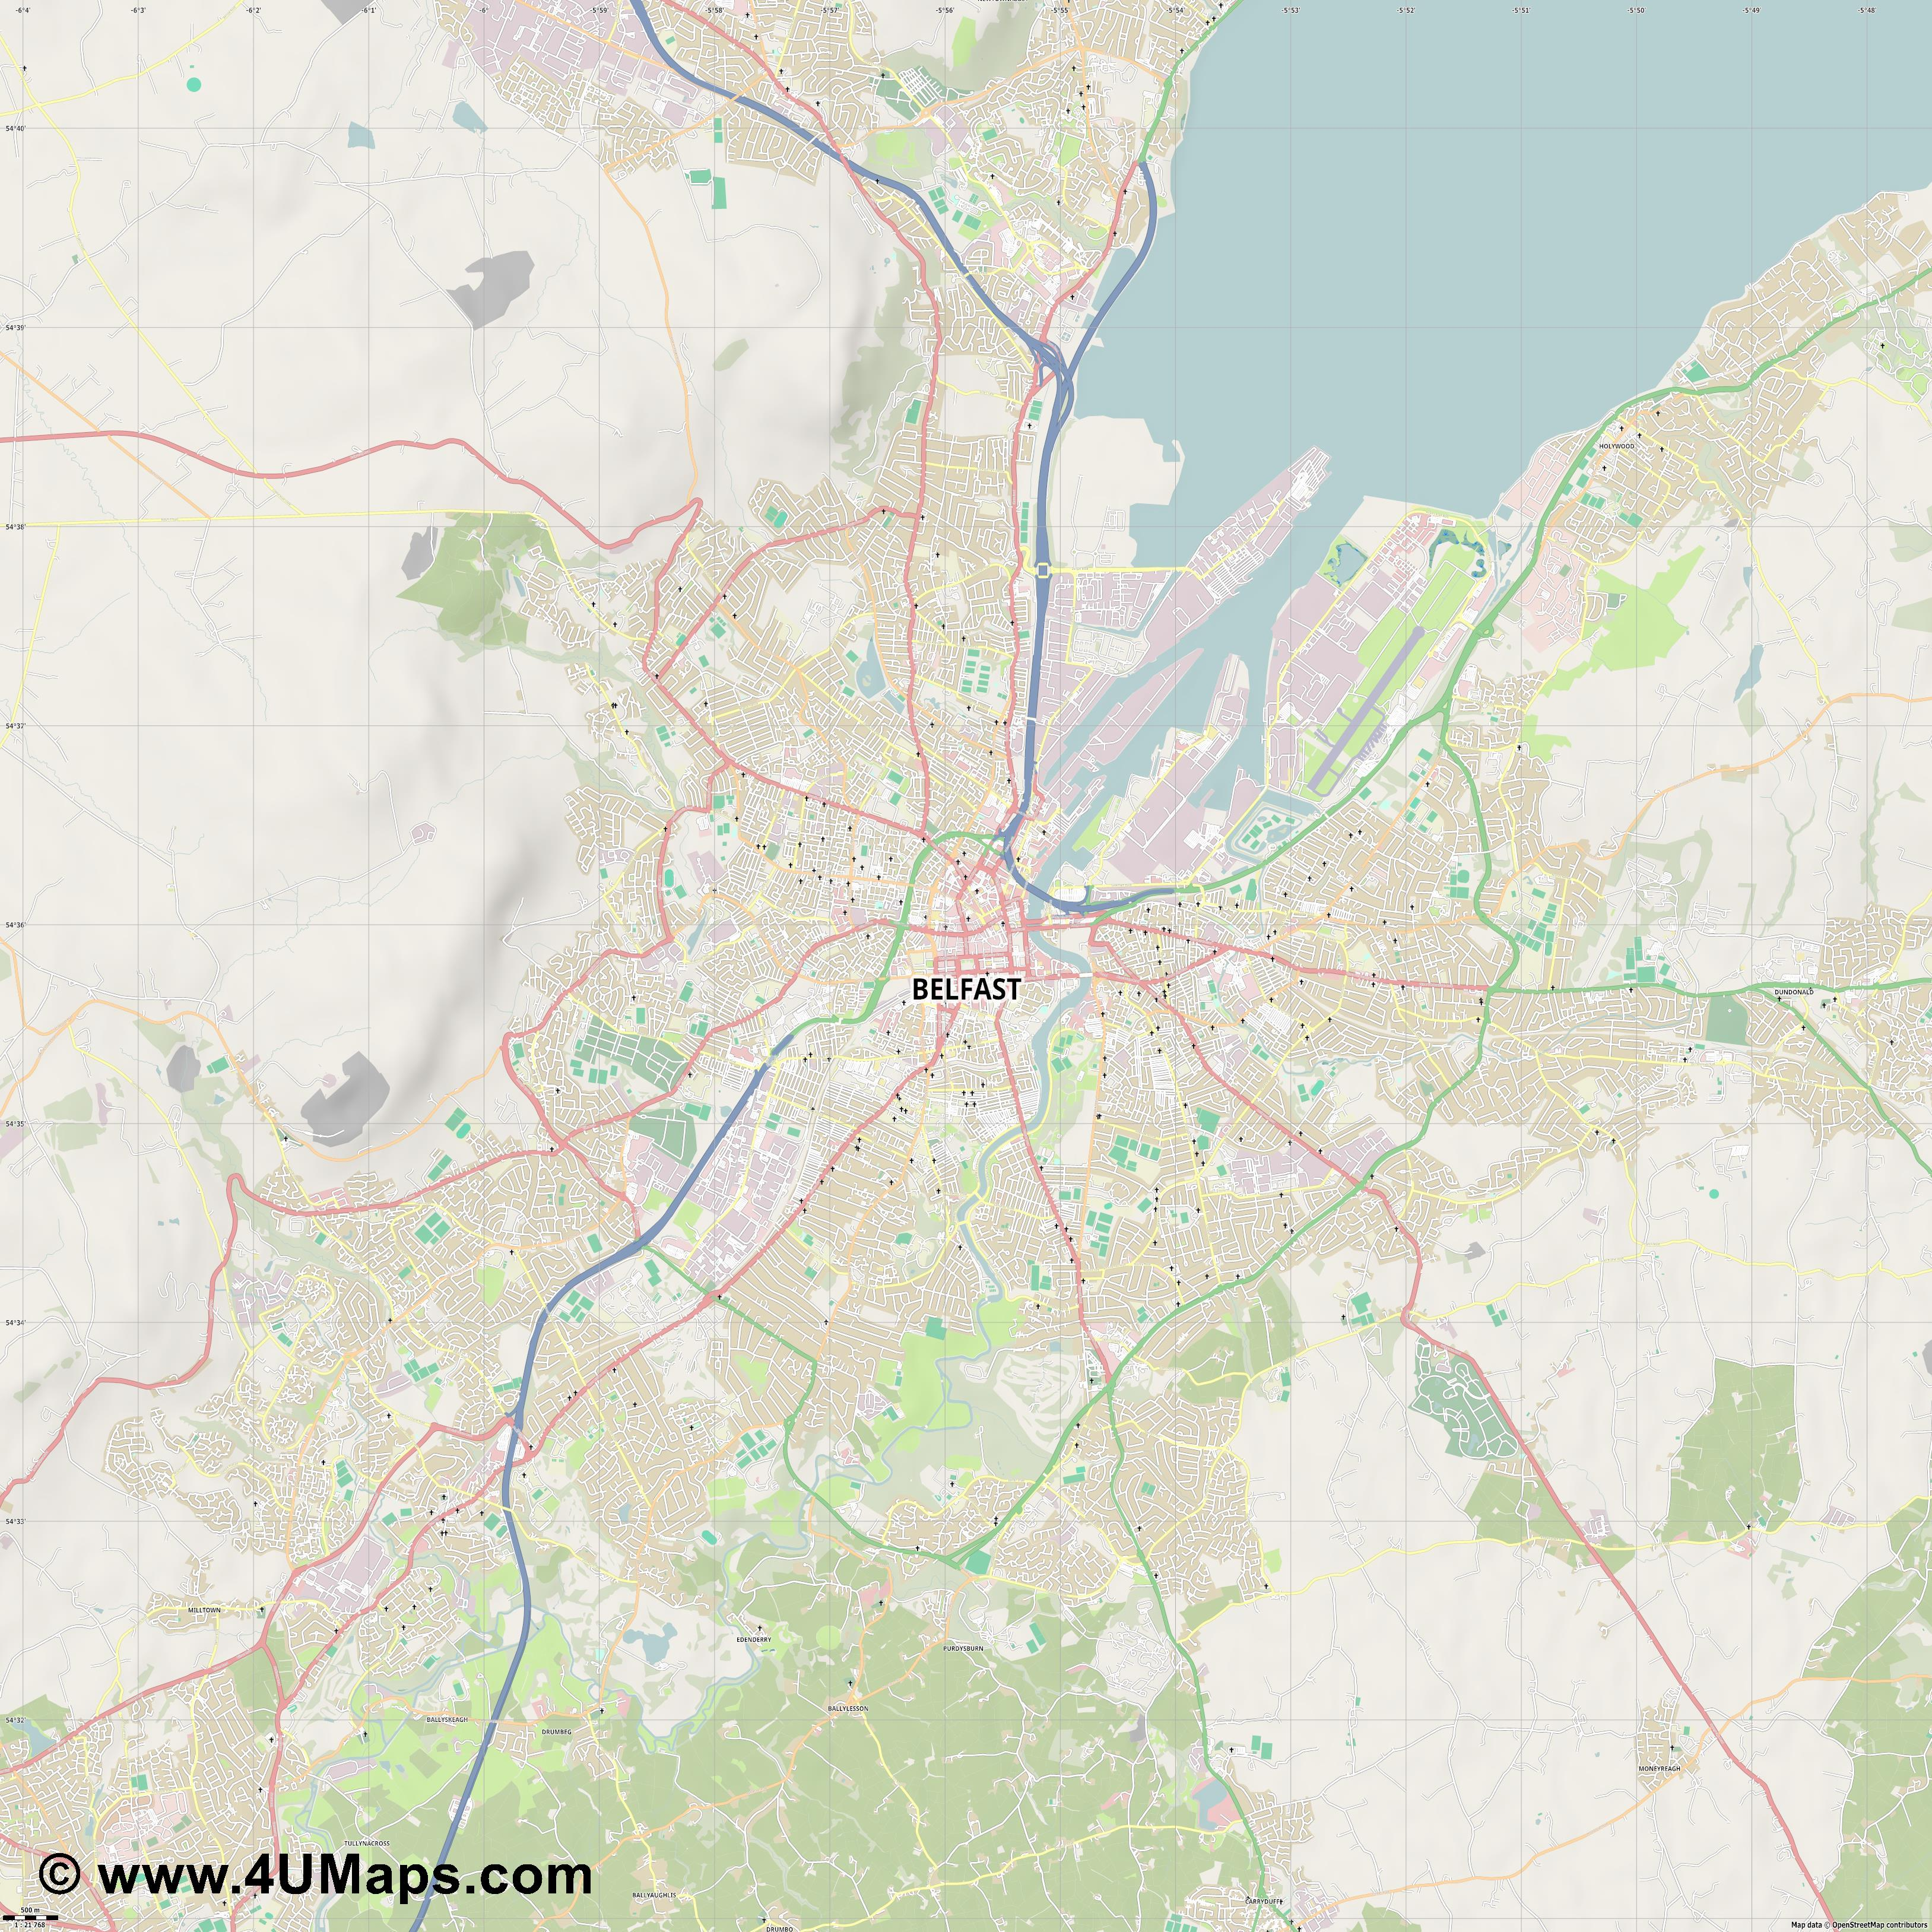 Belfast  jpg high detail, large area preview vector city map